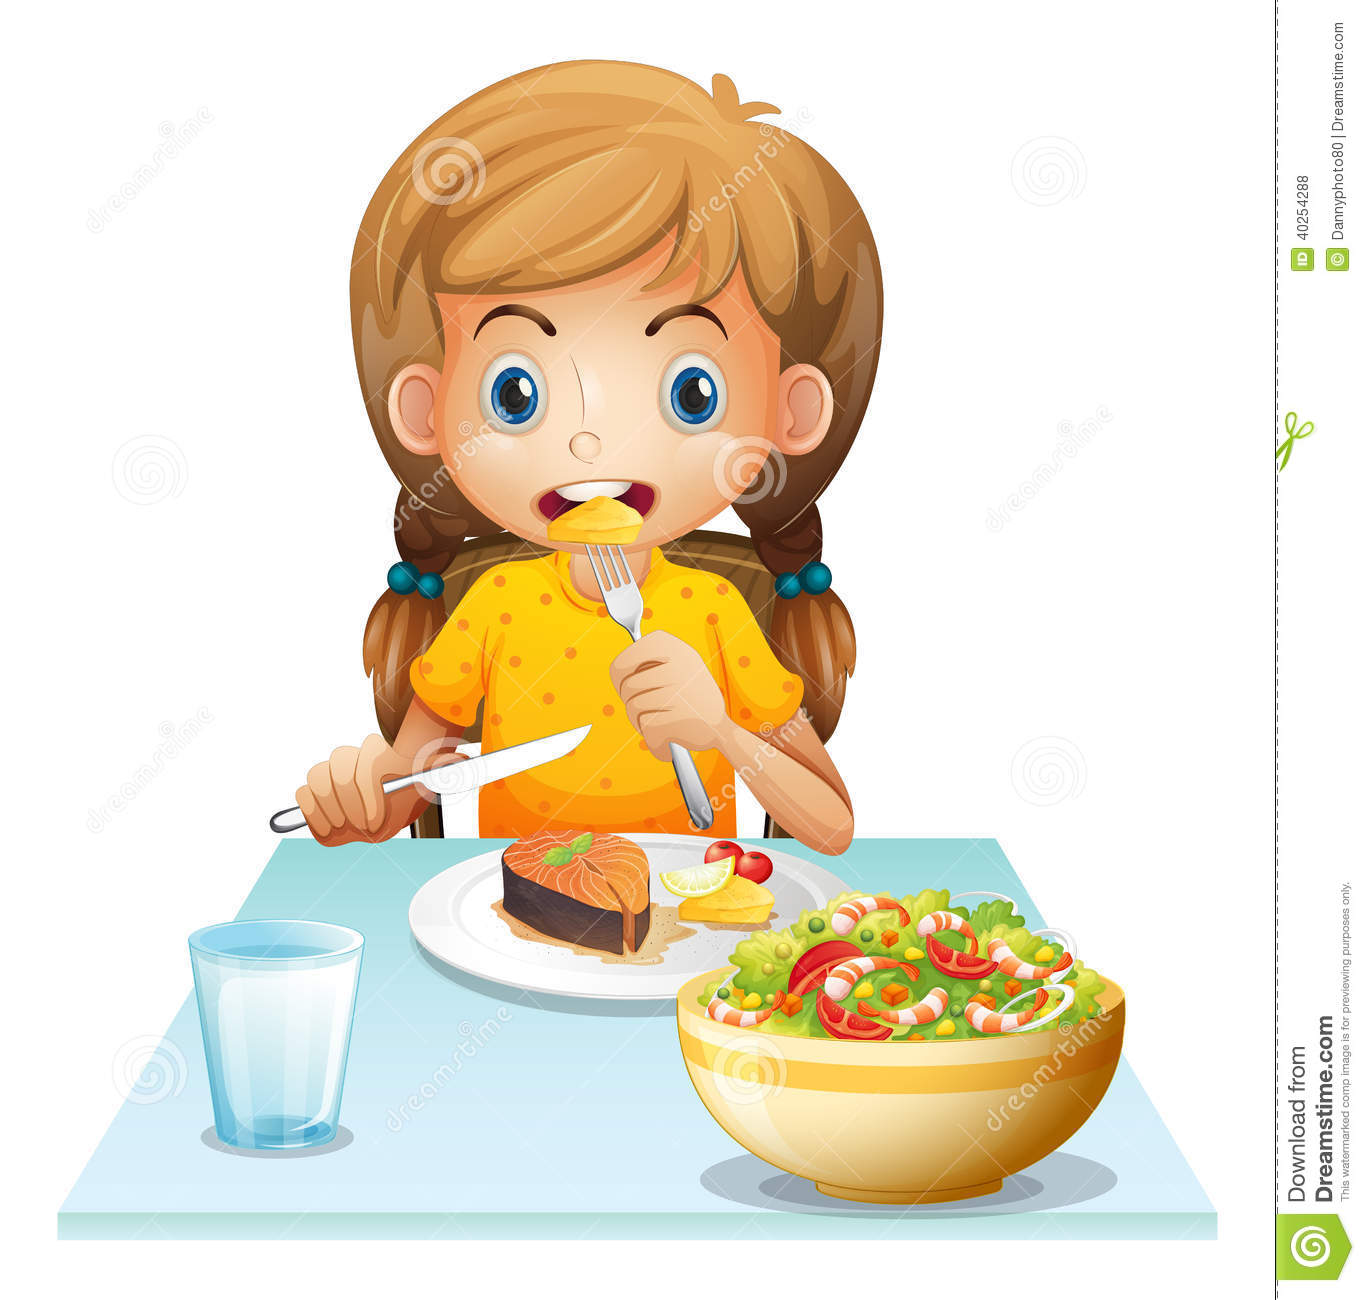 Happy Cute Kid Girl Eat Healthy Food Stock Vector - Illustration of little,  child: 166126255